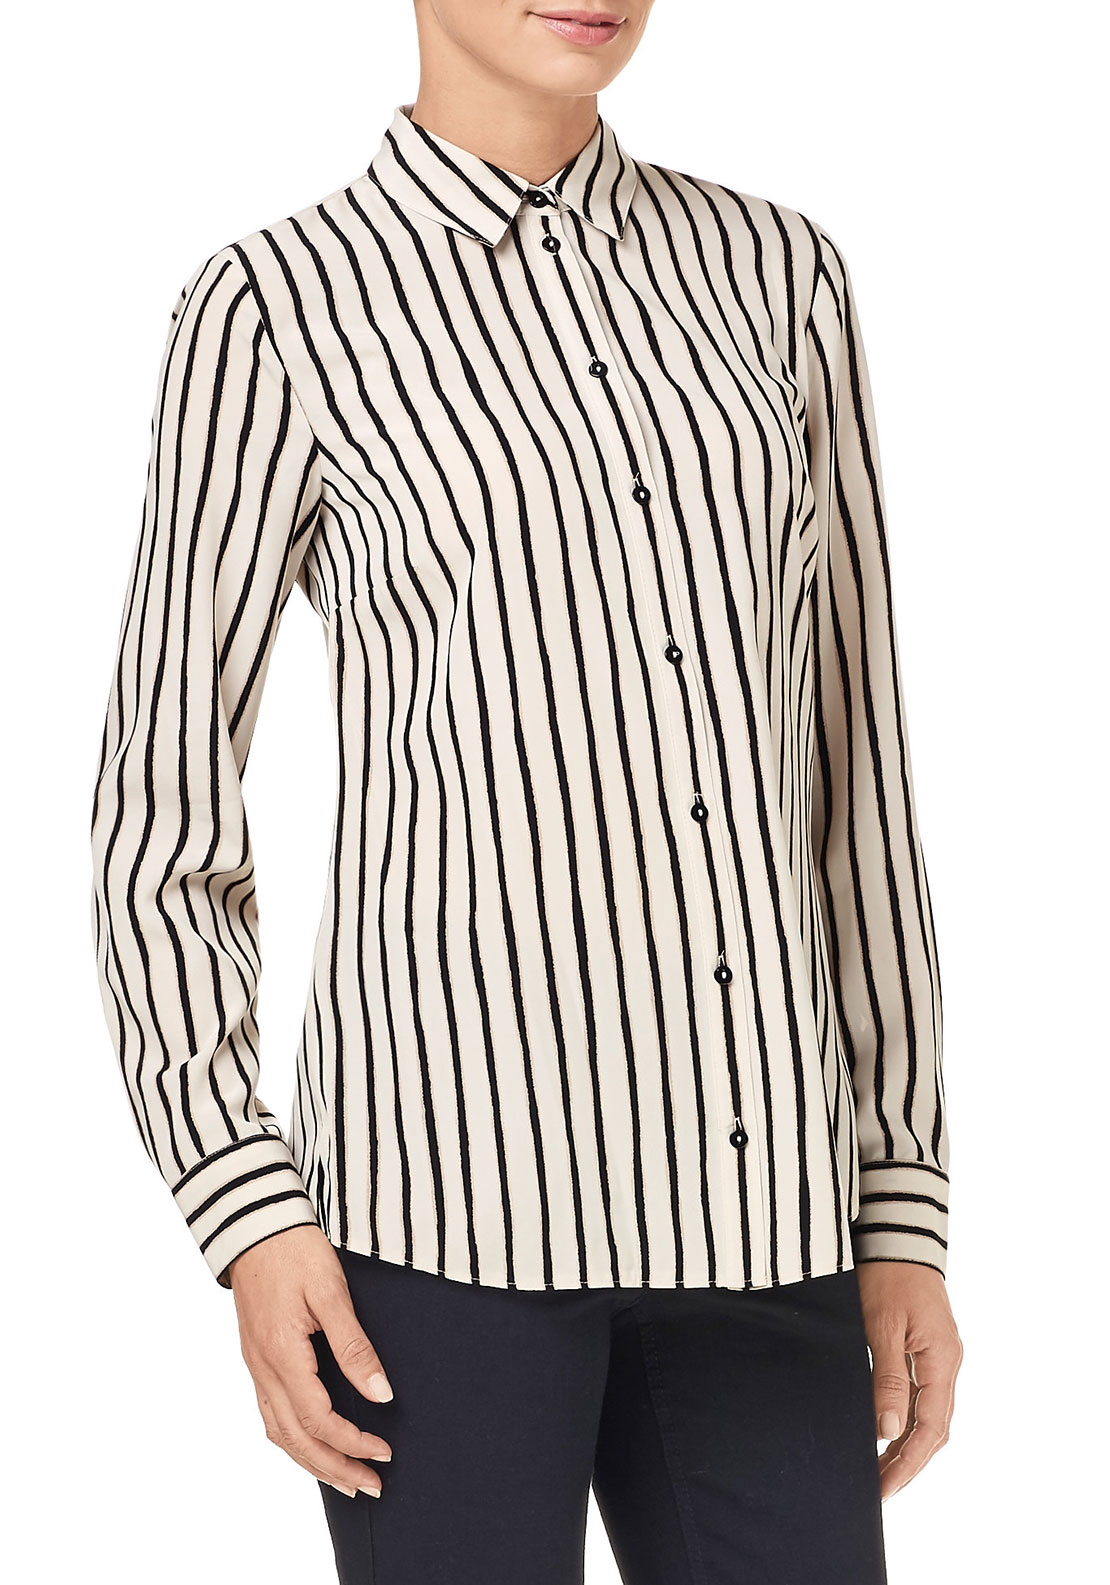 Gerry Weber Striped Blouse, Cream